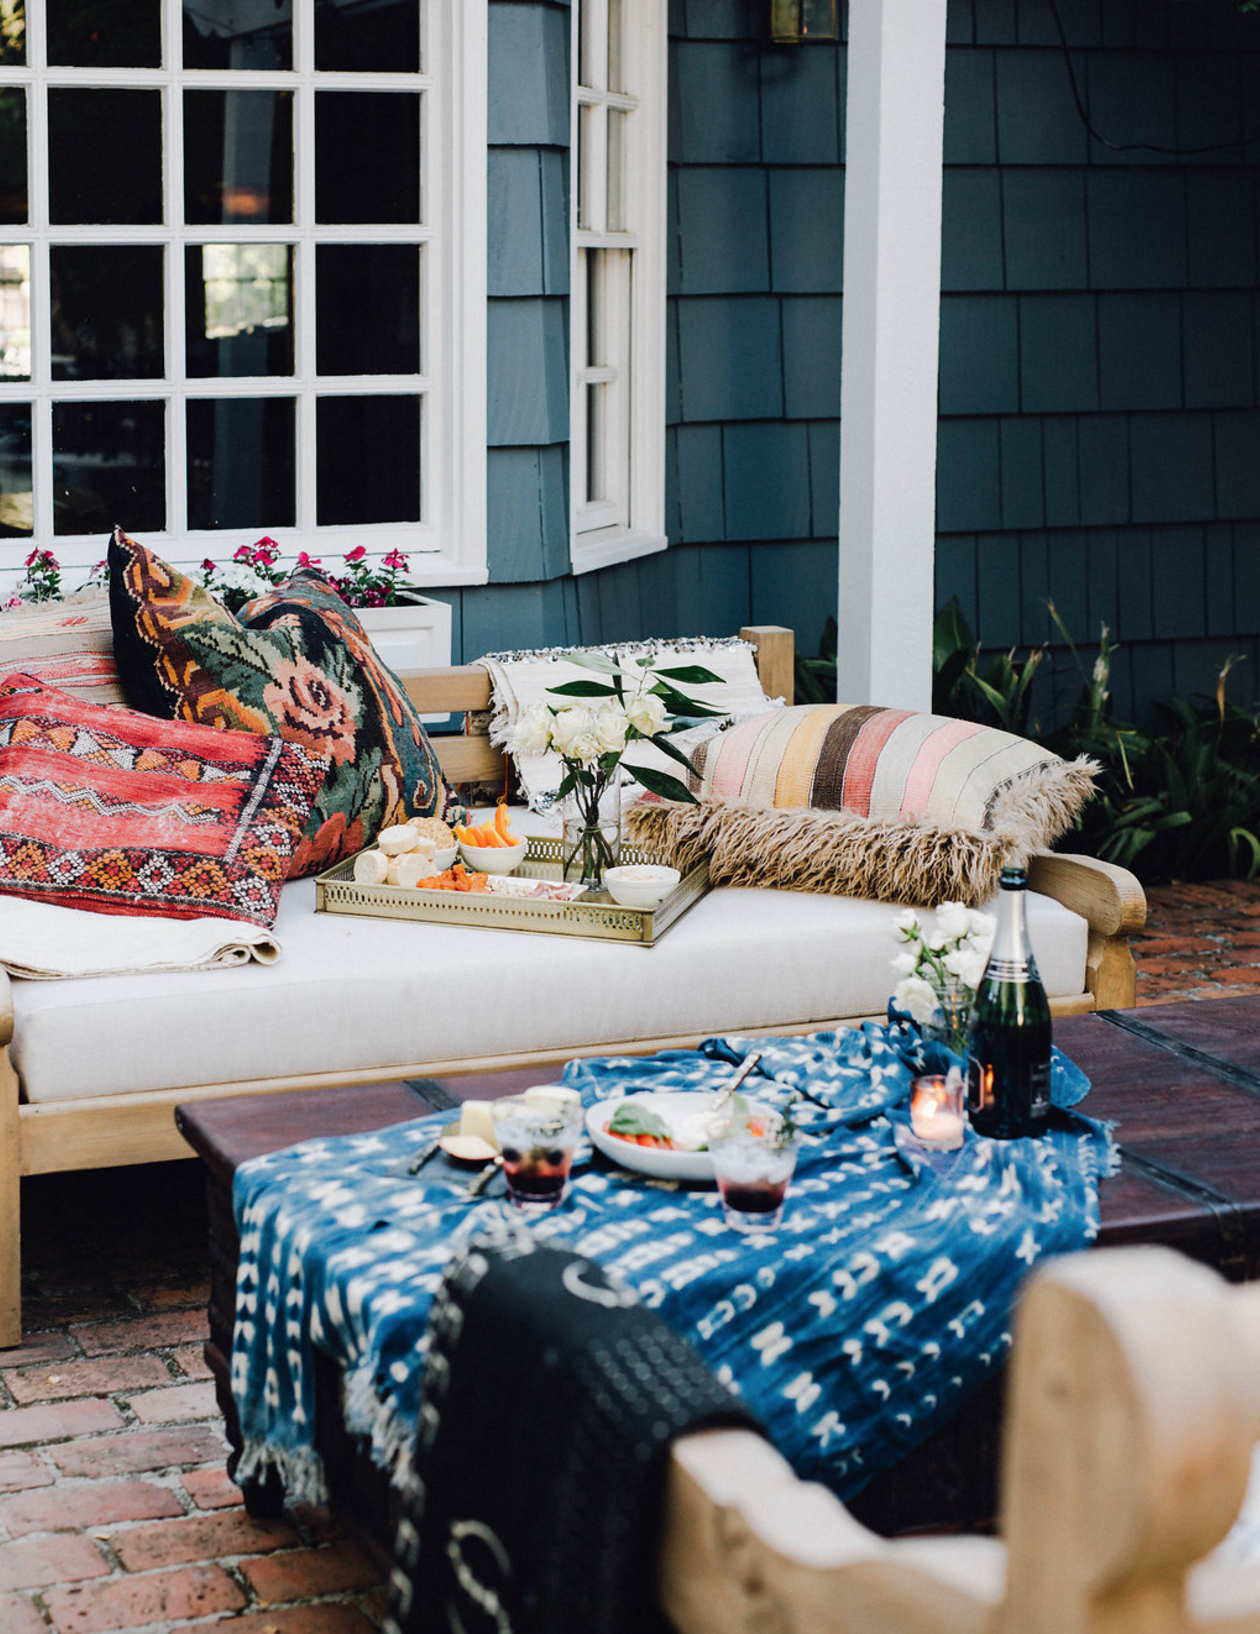 Okay, I realize this isn't a traditional living room. More of an outdoor living room - but I love it anyway!.Image via  Cheetah is the New Black .